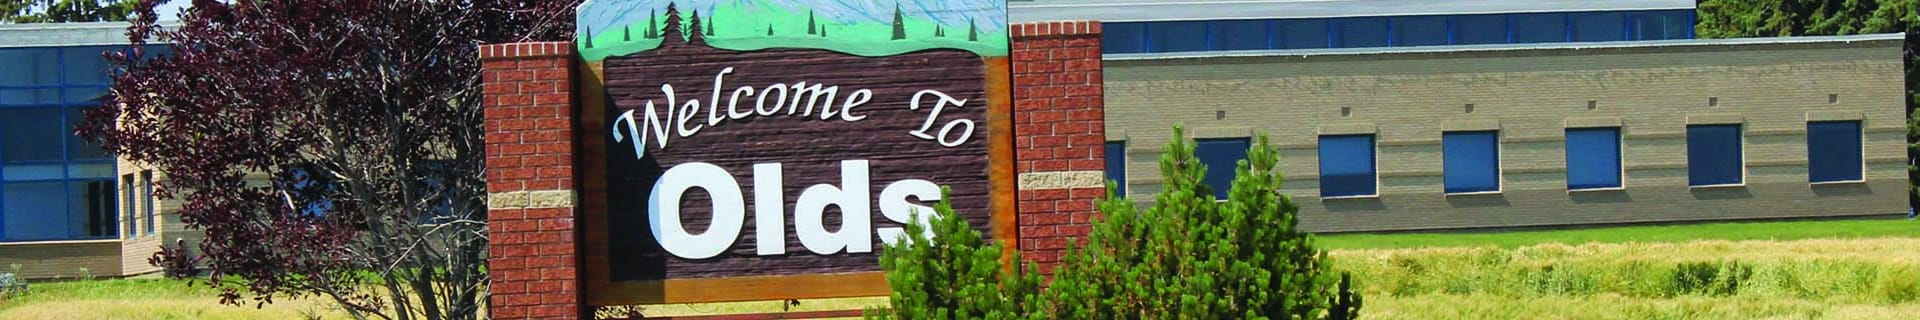 Town of Olds Sign